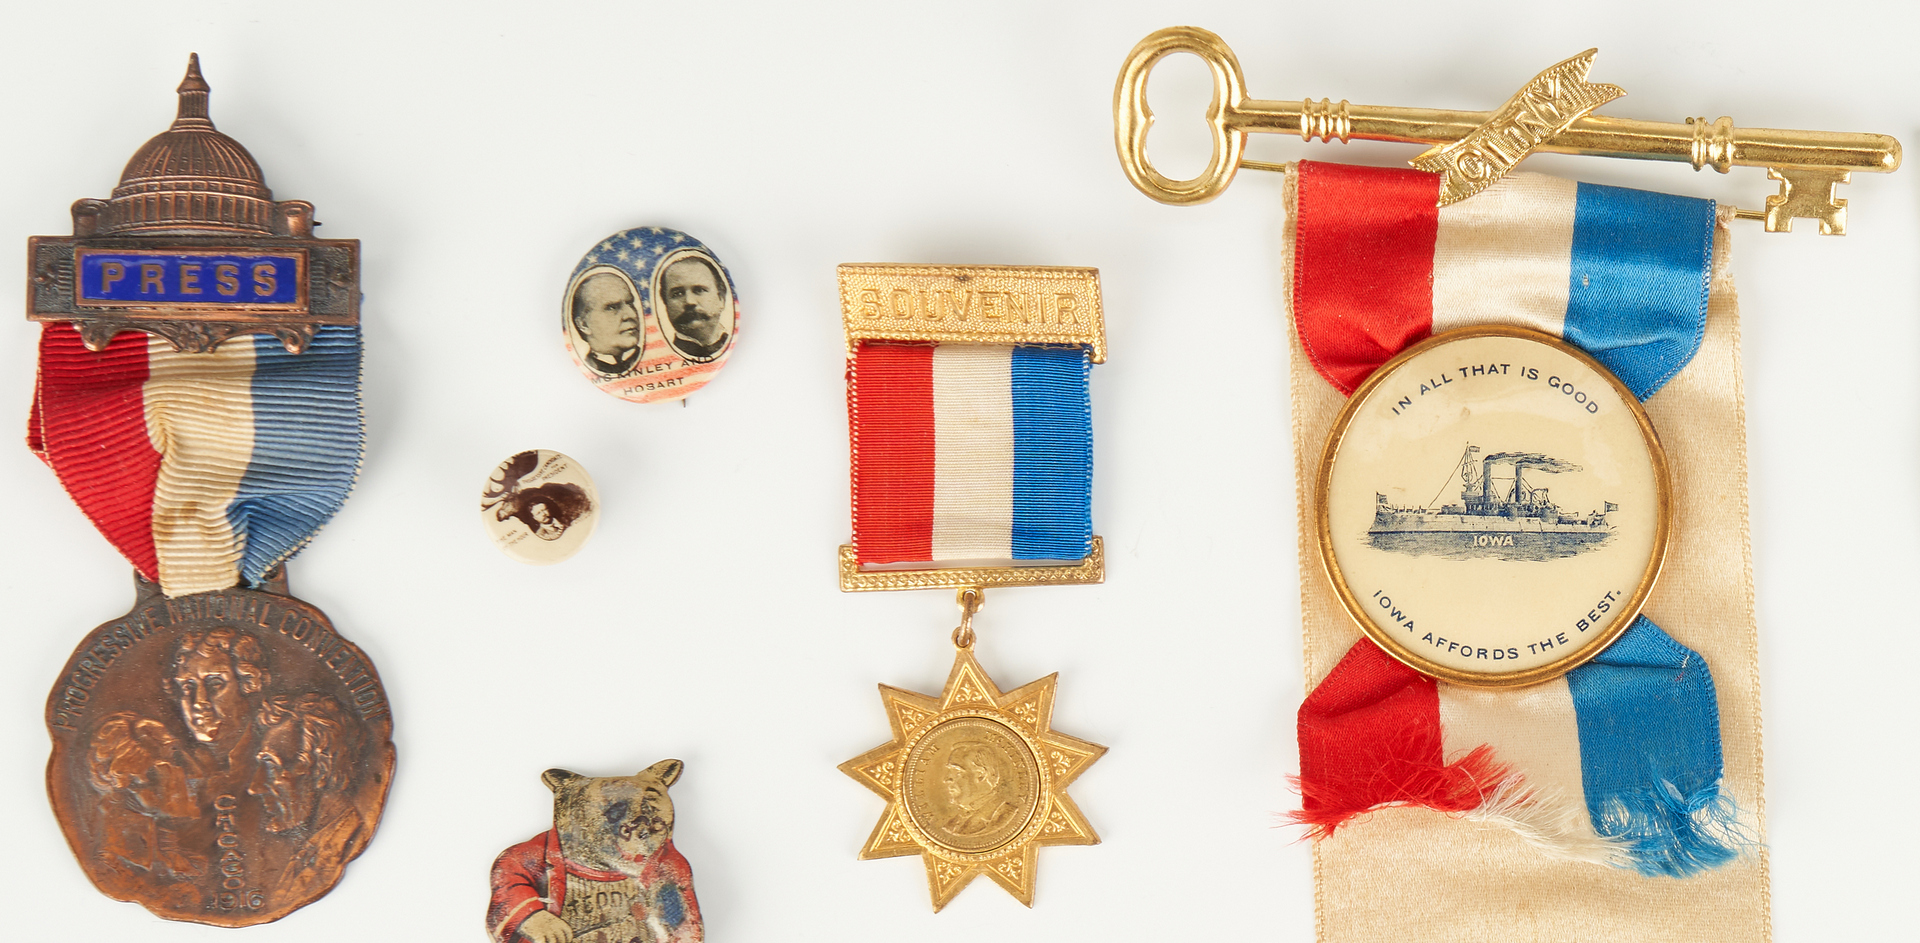 Lot 681: Group of Political Items, incl. The Right Men button, 1900